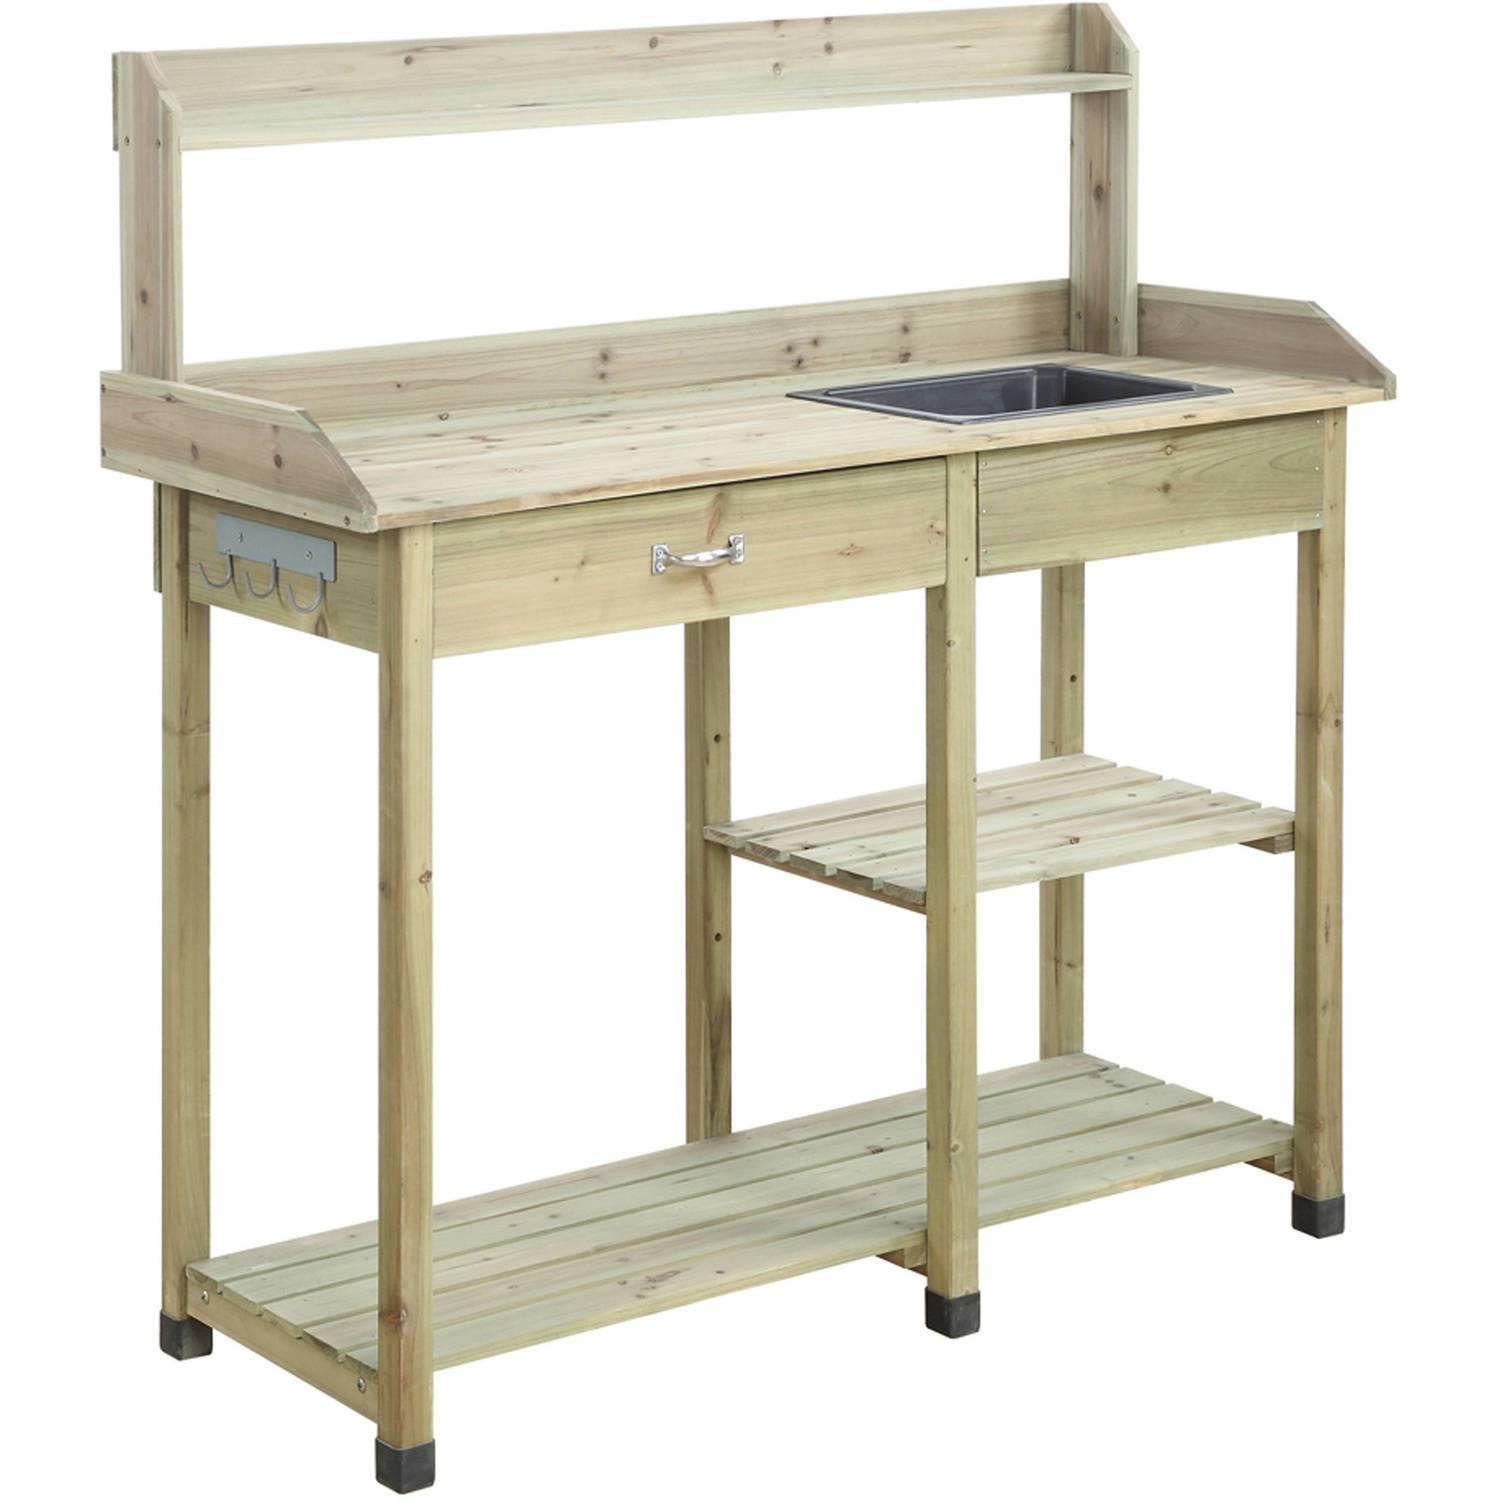 Convenience Concepts Planters And Potts Deluxe Potting Bench   Walmart.com